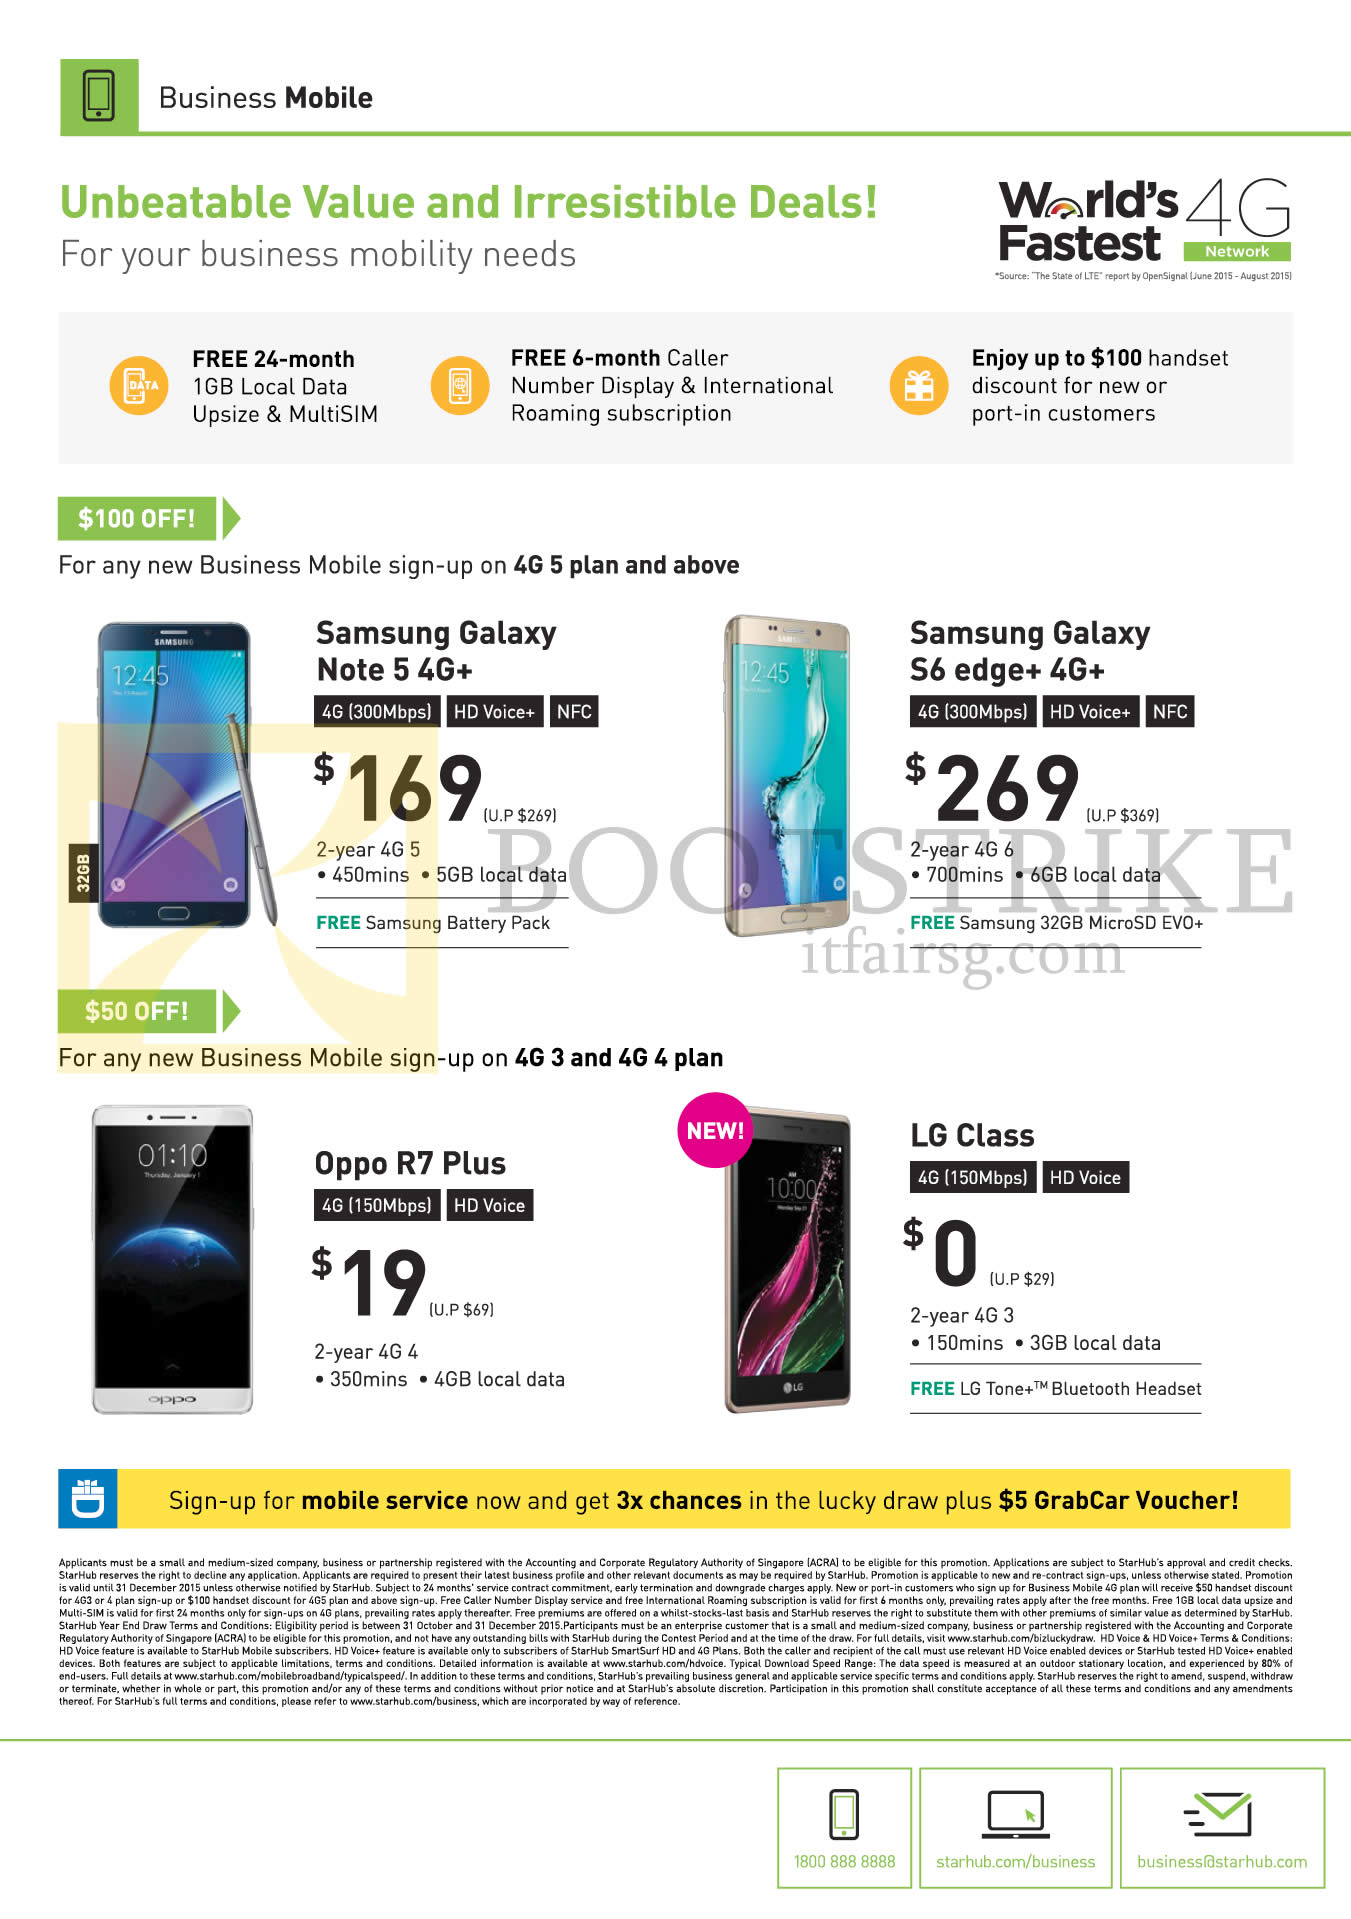 SITEX 2015 price list image brochure of Starhub Business Mobile Phones Samsung Galaxy Note 5, S6 Edge Plus, Oppo R7 Plus, LG Class